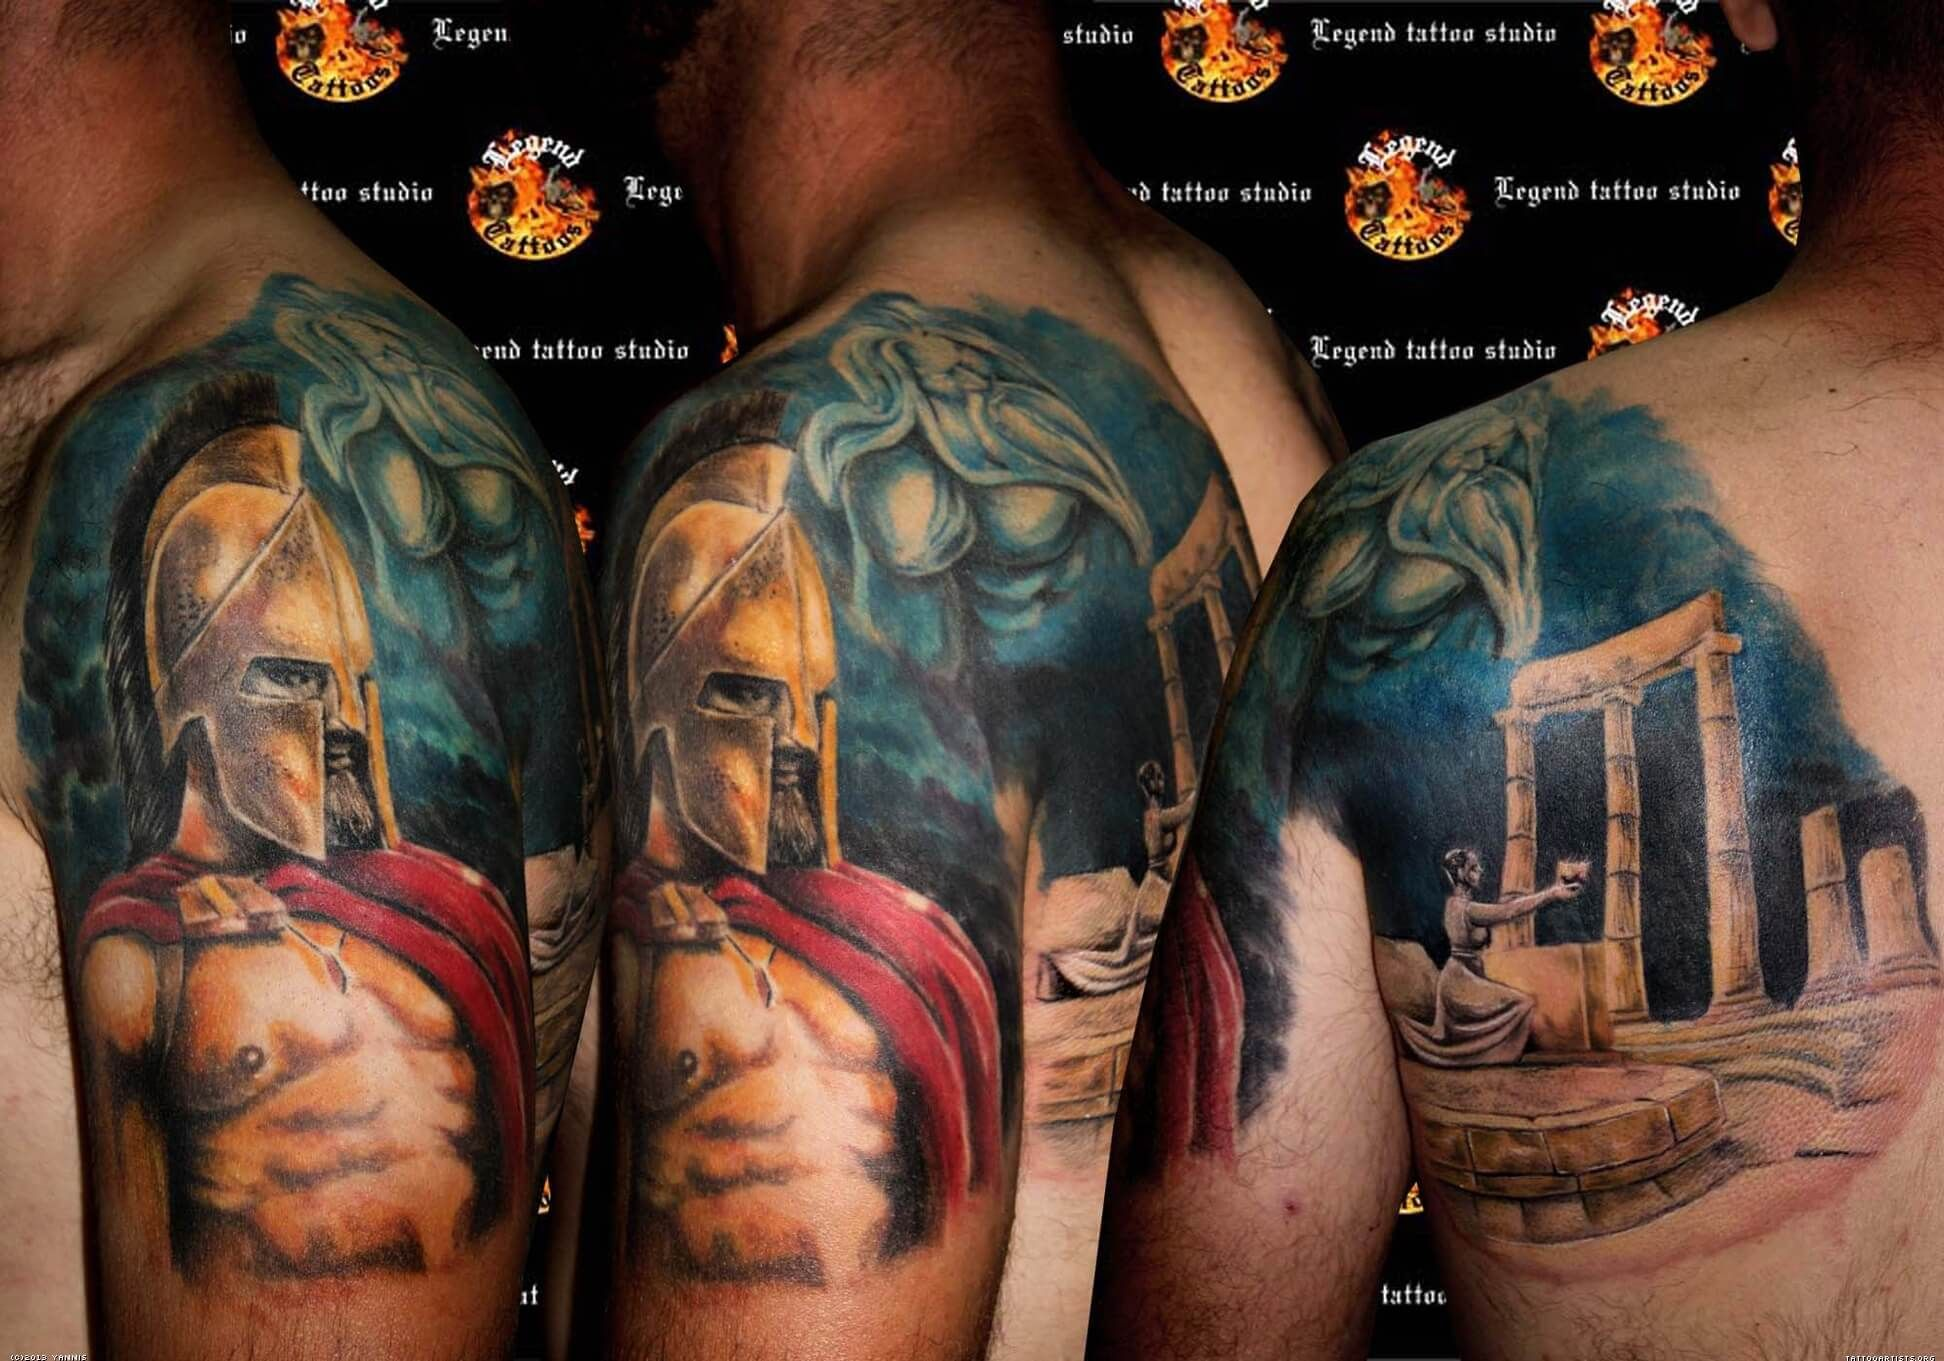 300 Spartan Tattoo Designs And Ideas On Shoulder Arm 300 Ideas And Designs